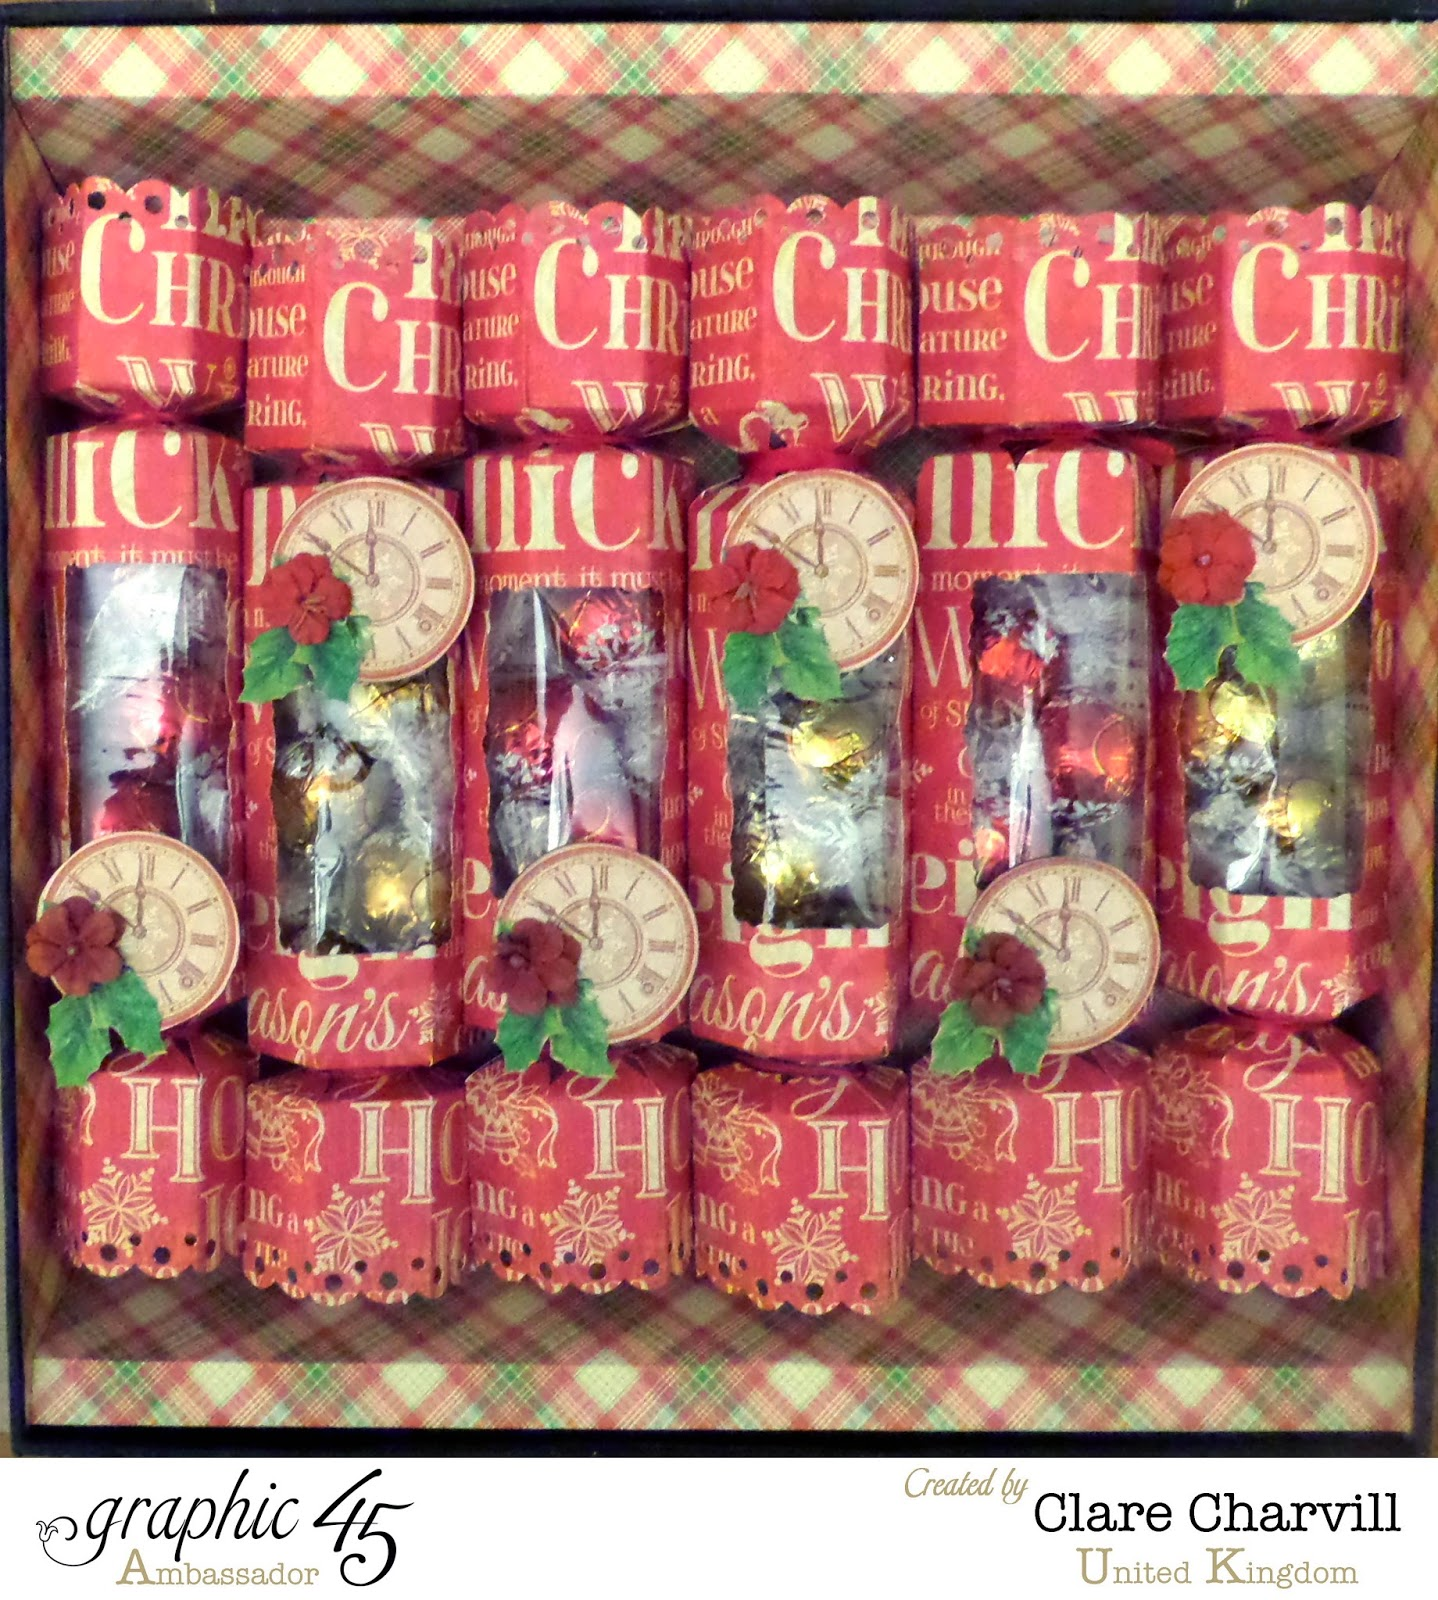 Twas the Night Before Christmas Box of Crackers 6 Clare Charvill Graphic 45 Ambassador